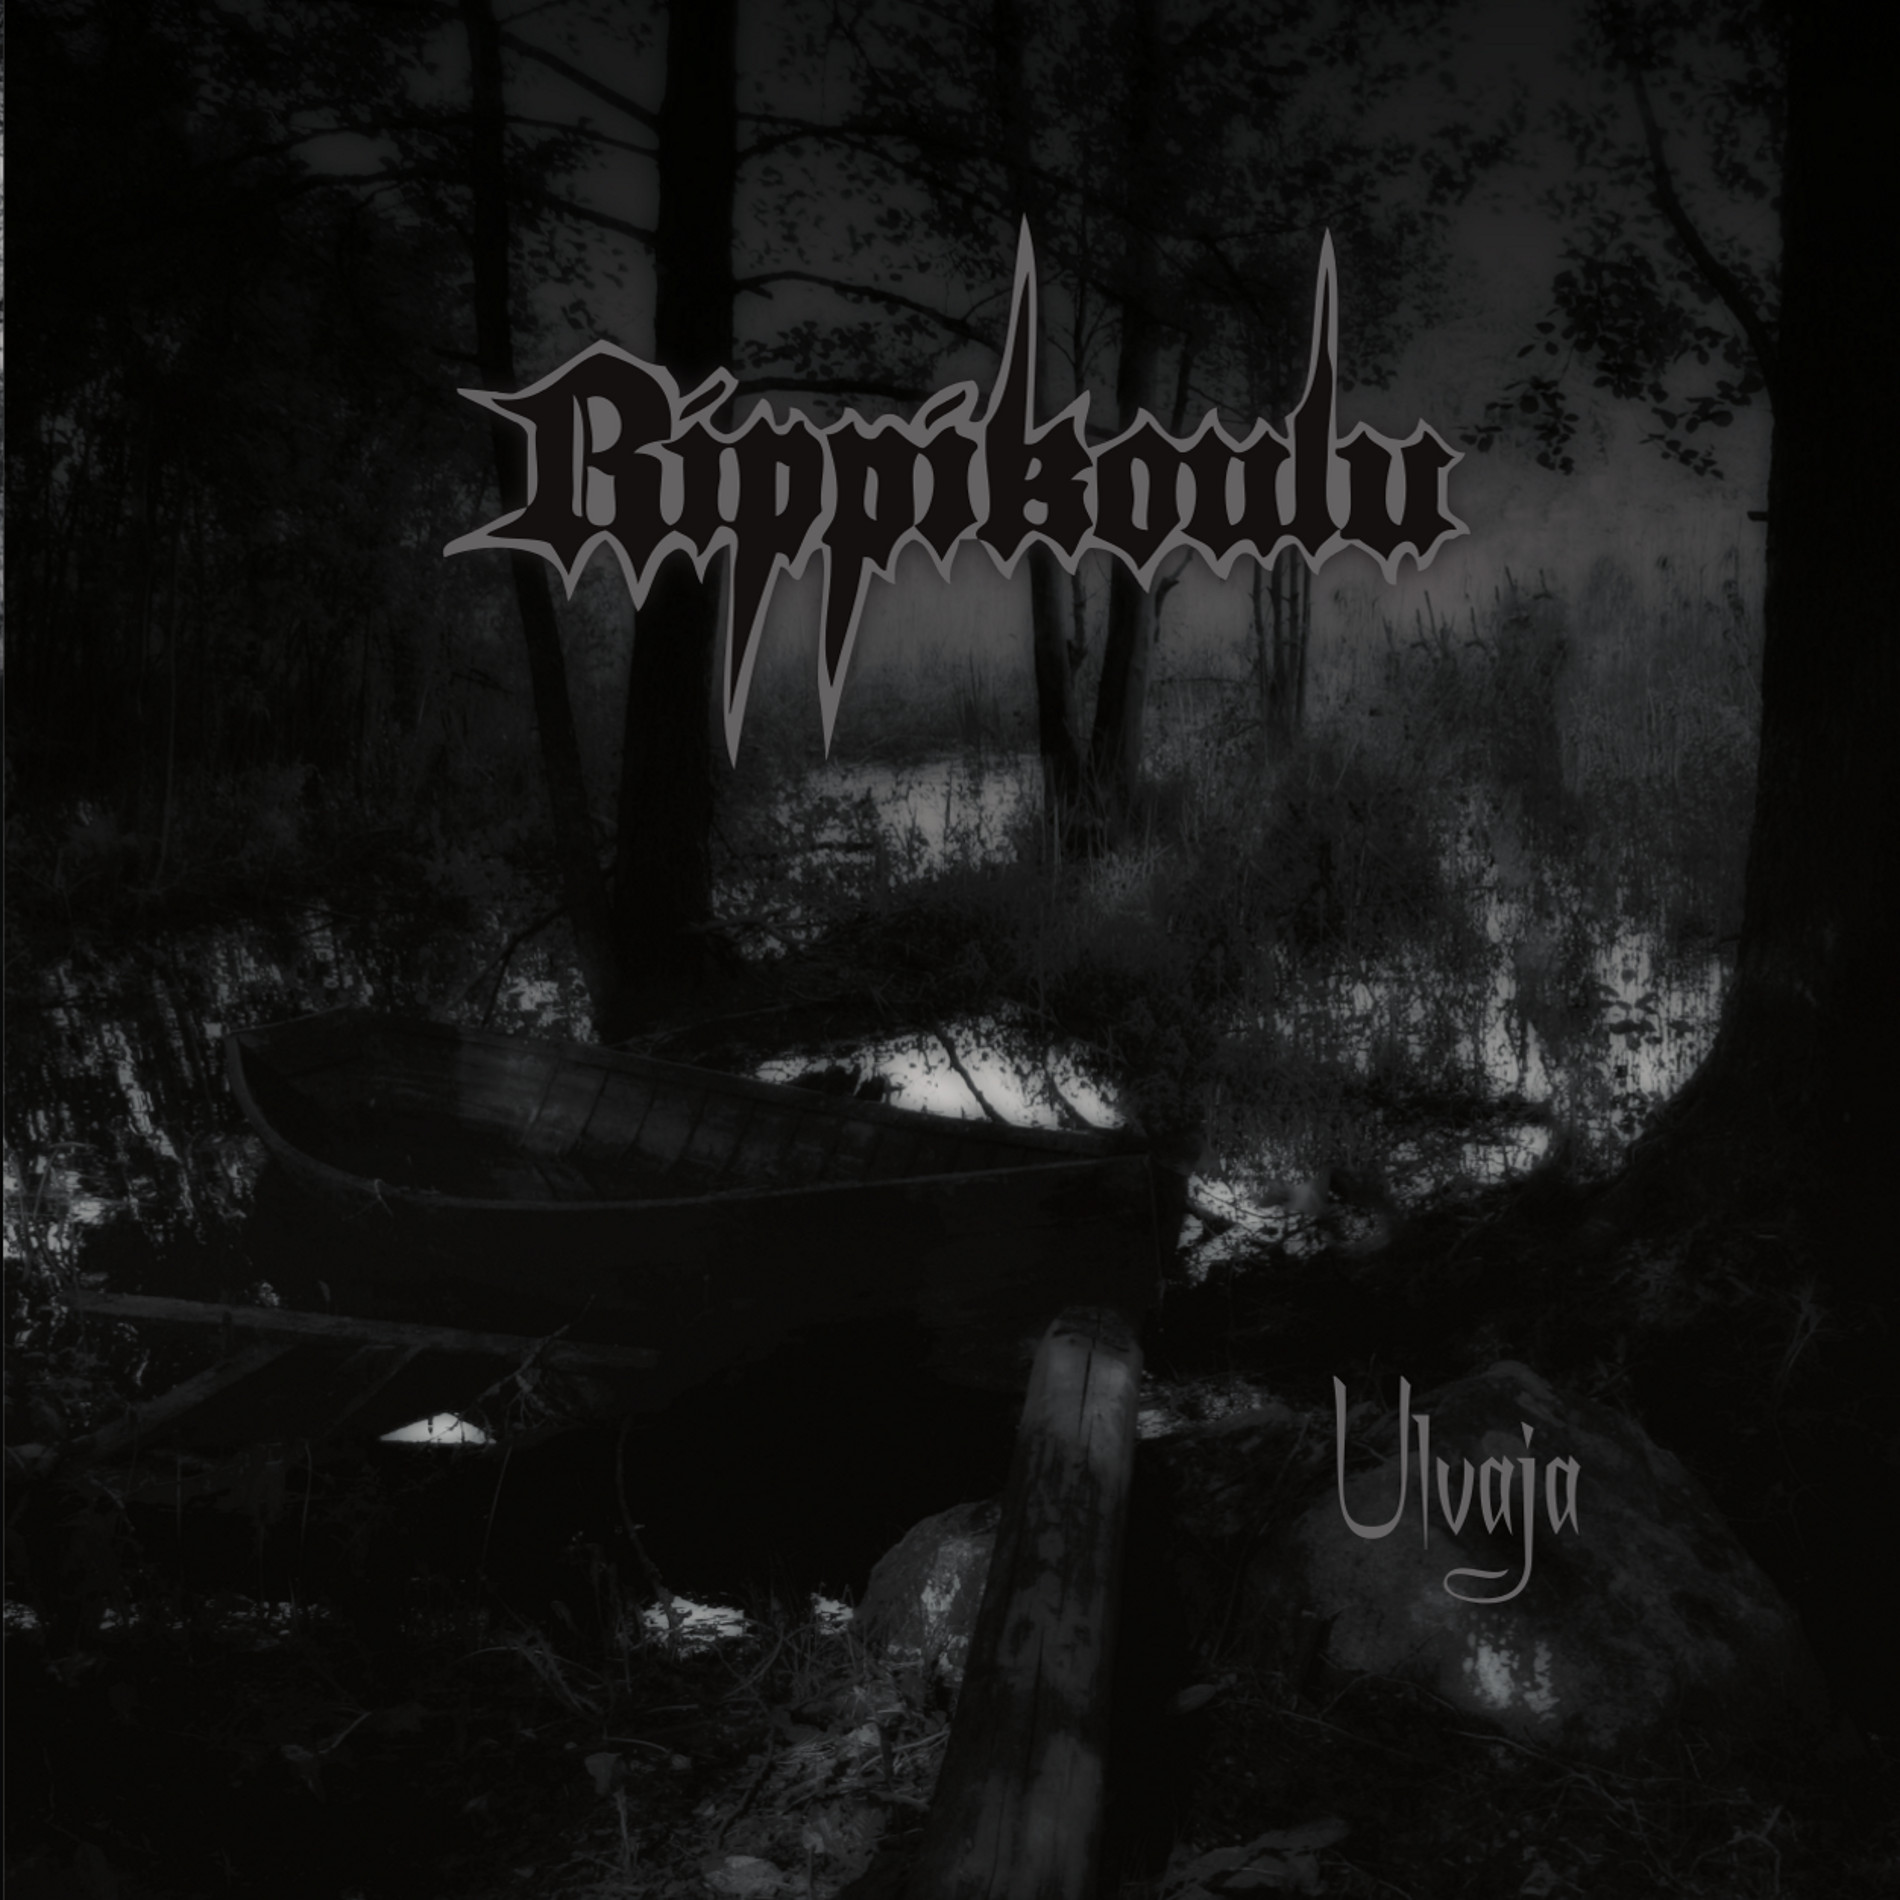 Rippikoulu – Ulvaja Review